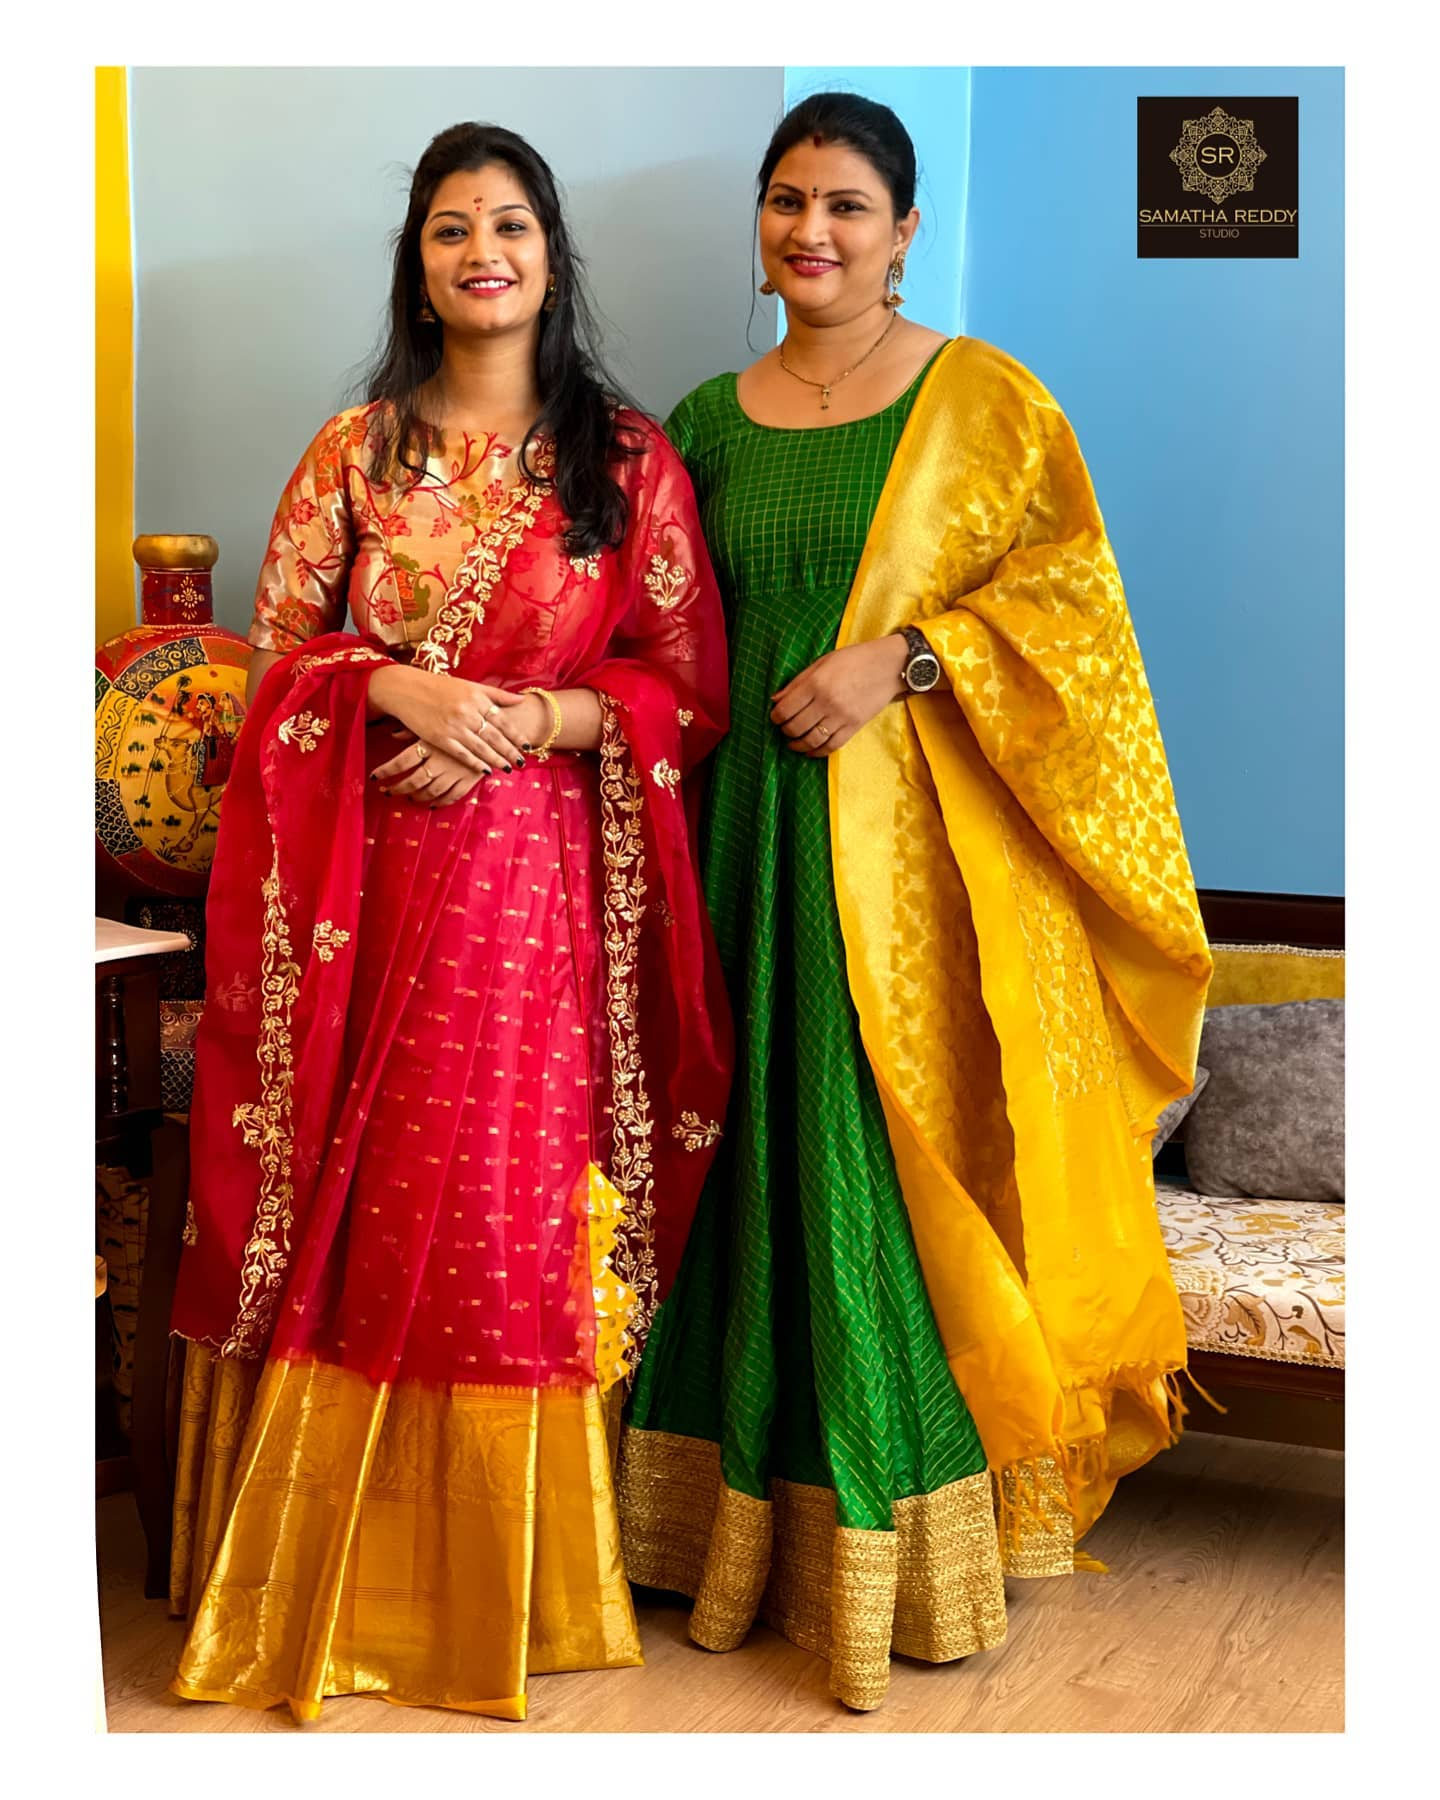 Beautiful designer Samatha Reddy with her daughter in Amma kutty series . She is in green checked long frock with benerasi dupatta. Daughter in pattu long frock with net dupatta.   2021-06-18